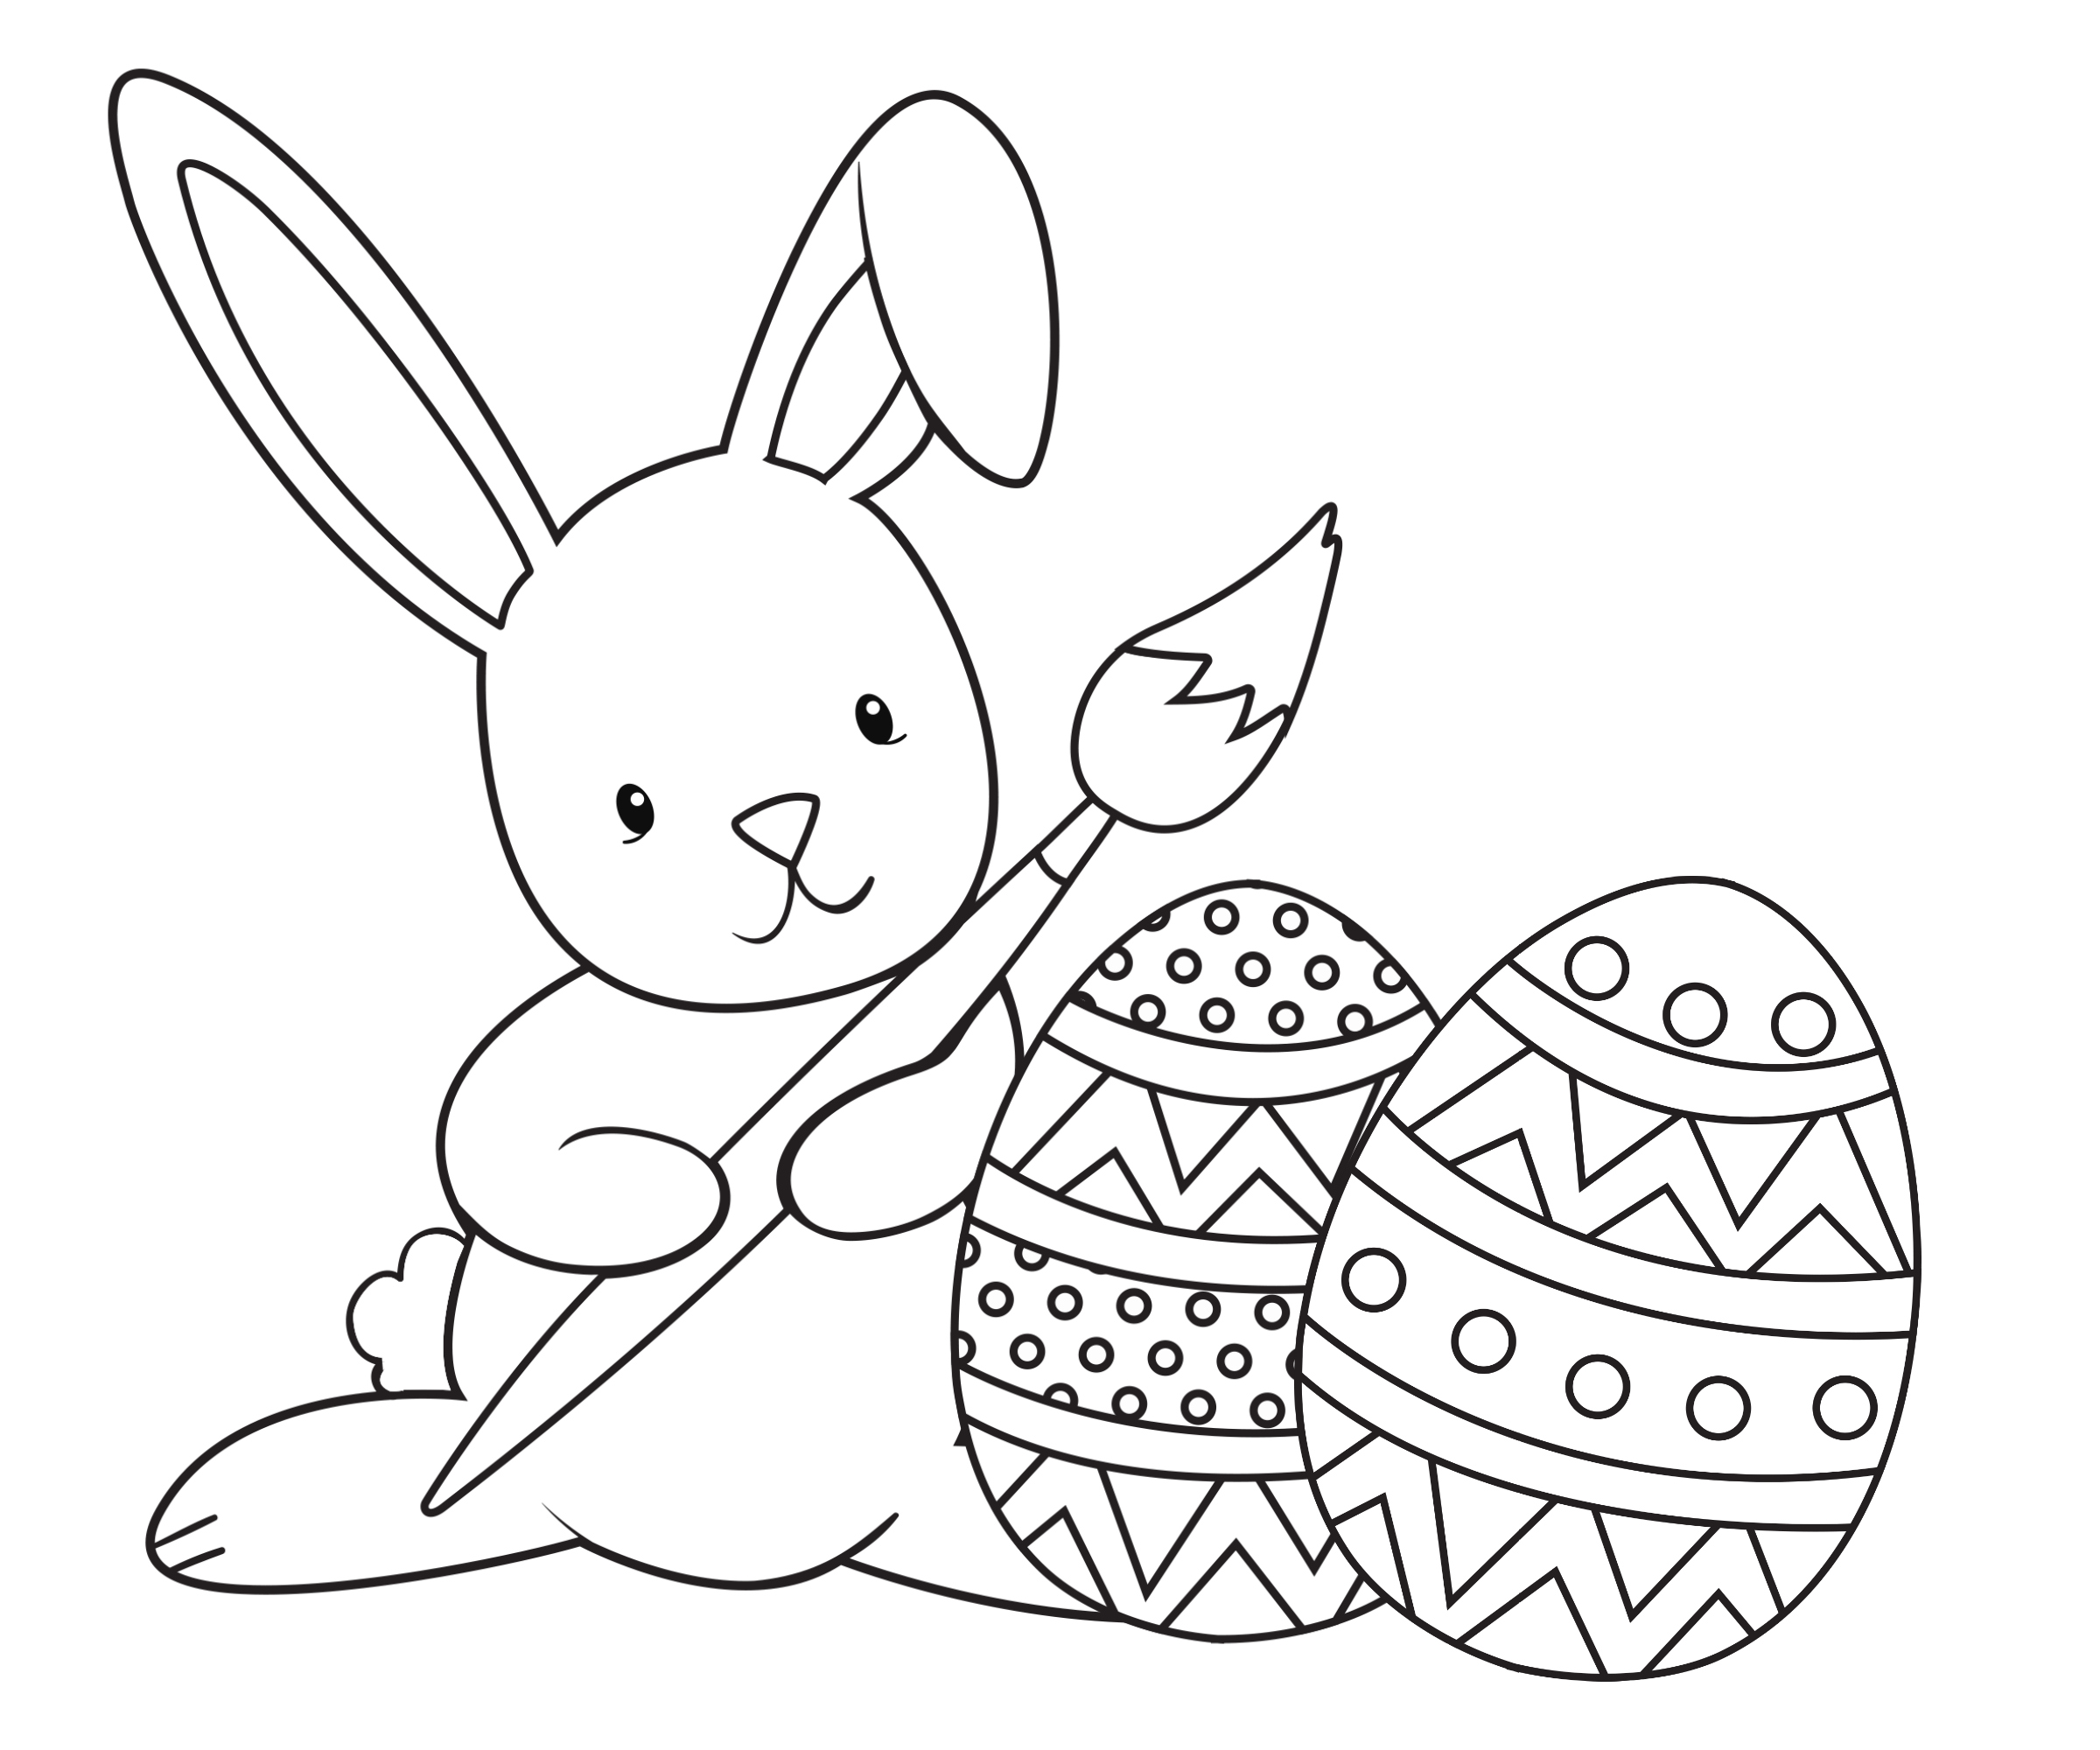 coloring book pages for easter - photo#3